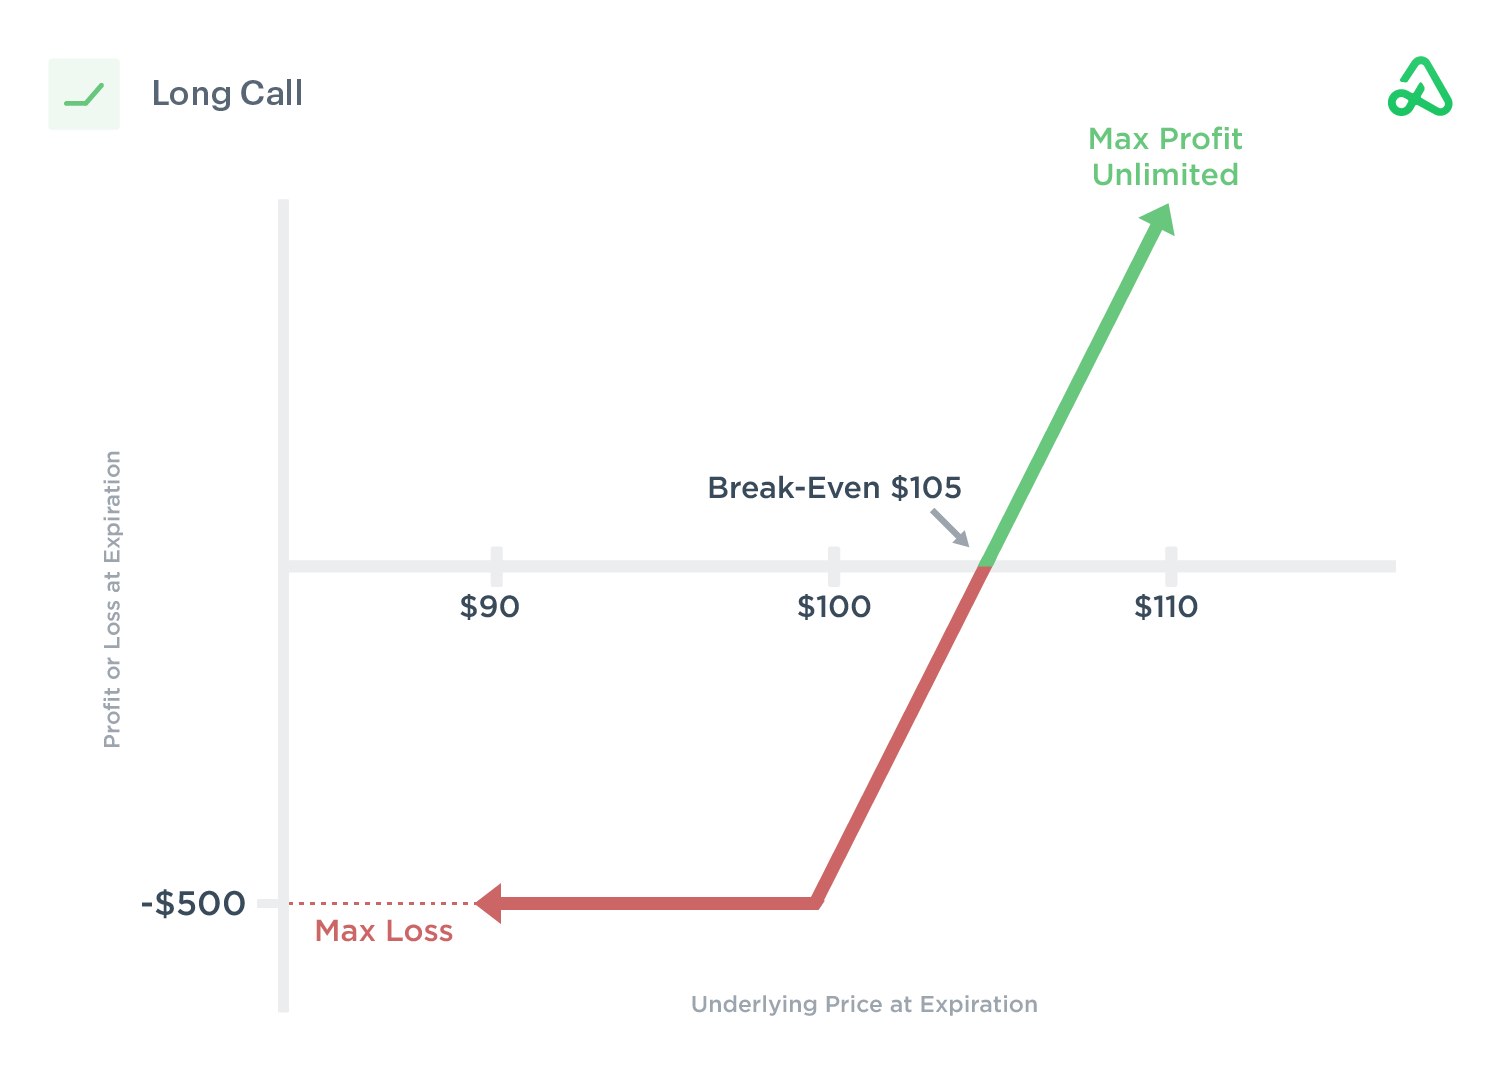 Image of long call payoff diagram showing max profit, max loss, and break-even points